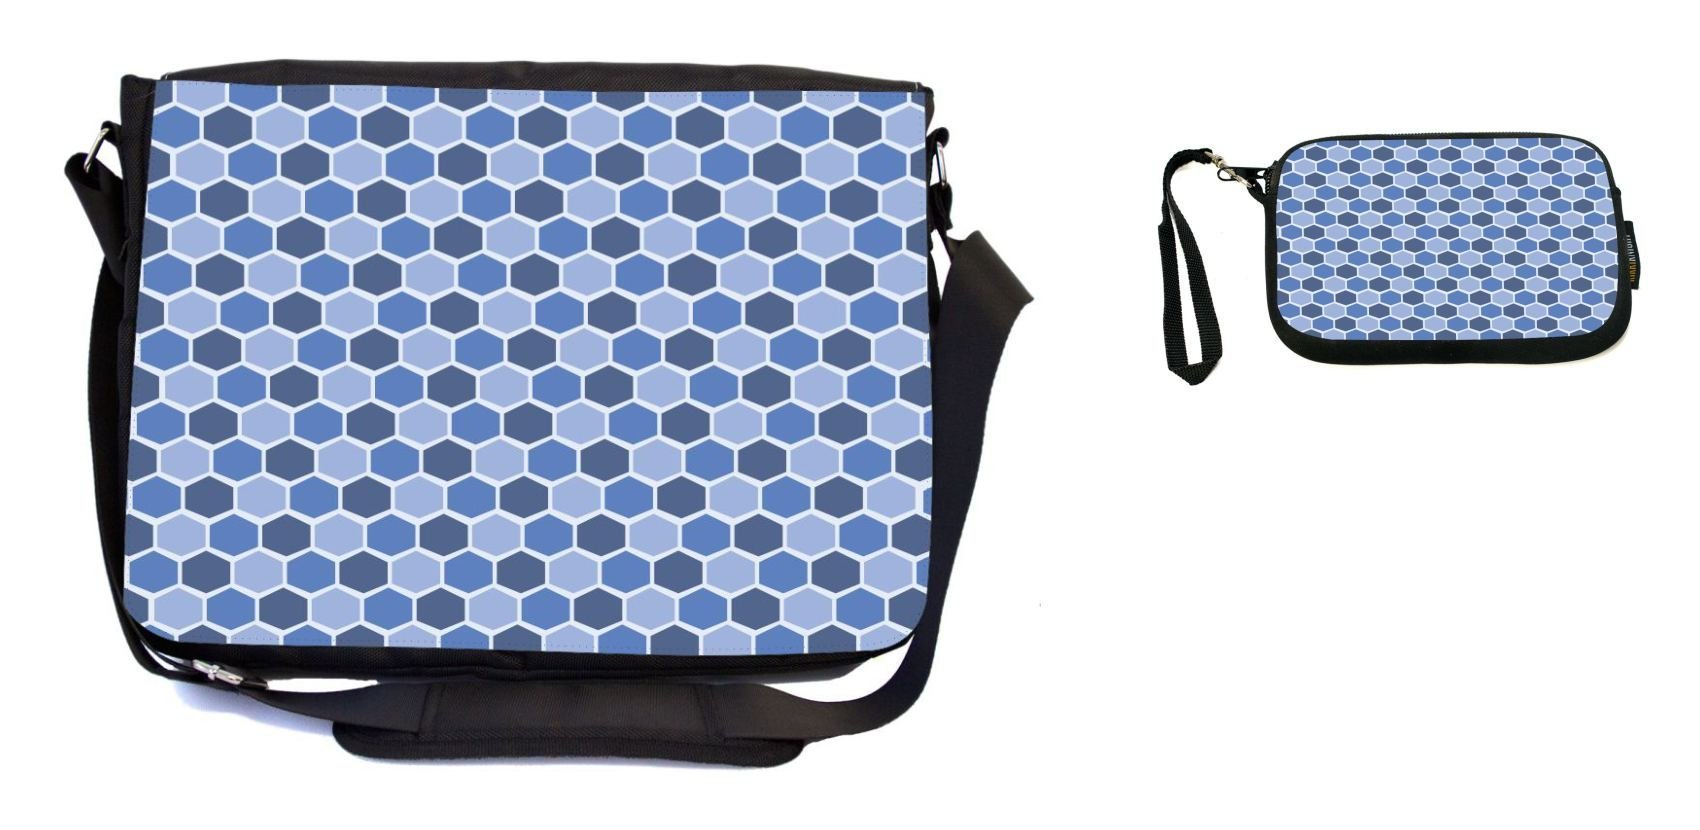 Rikki Knight Monaco Blue Teal Blue Shades Stained Glass Design Messenger Bag - School Bag - Laptop Bag - with Padded Insert - Includes UKBK Premium Coin Purse